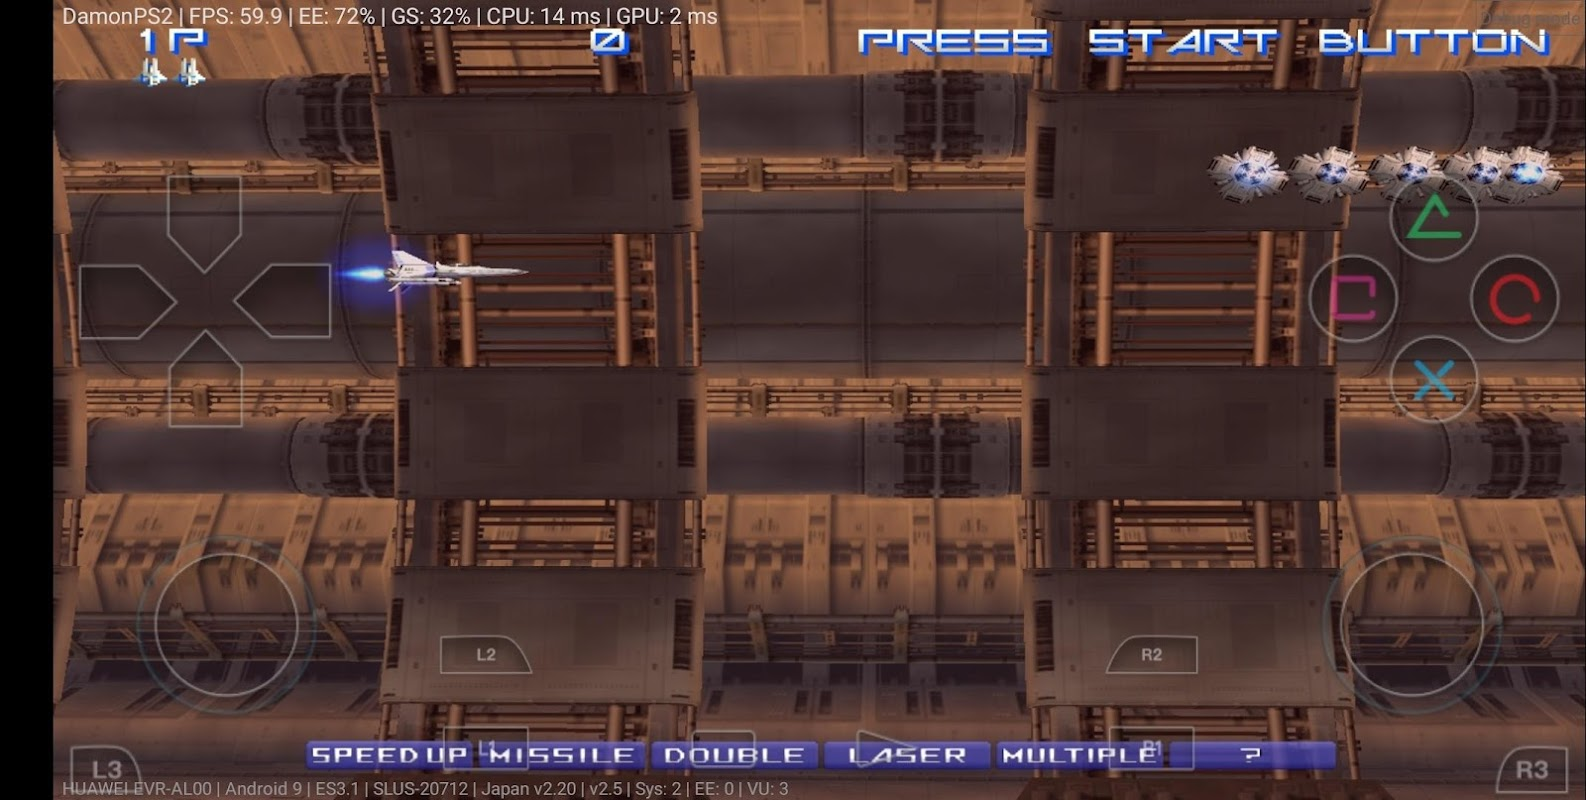 DamonPS2 PRO (PS2 Emulator) (PPSSPP's Best Combos) APK latest version 2 5 1  - Free Action Games for Android